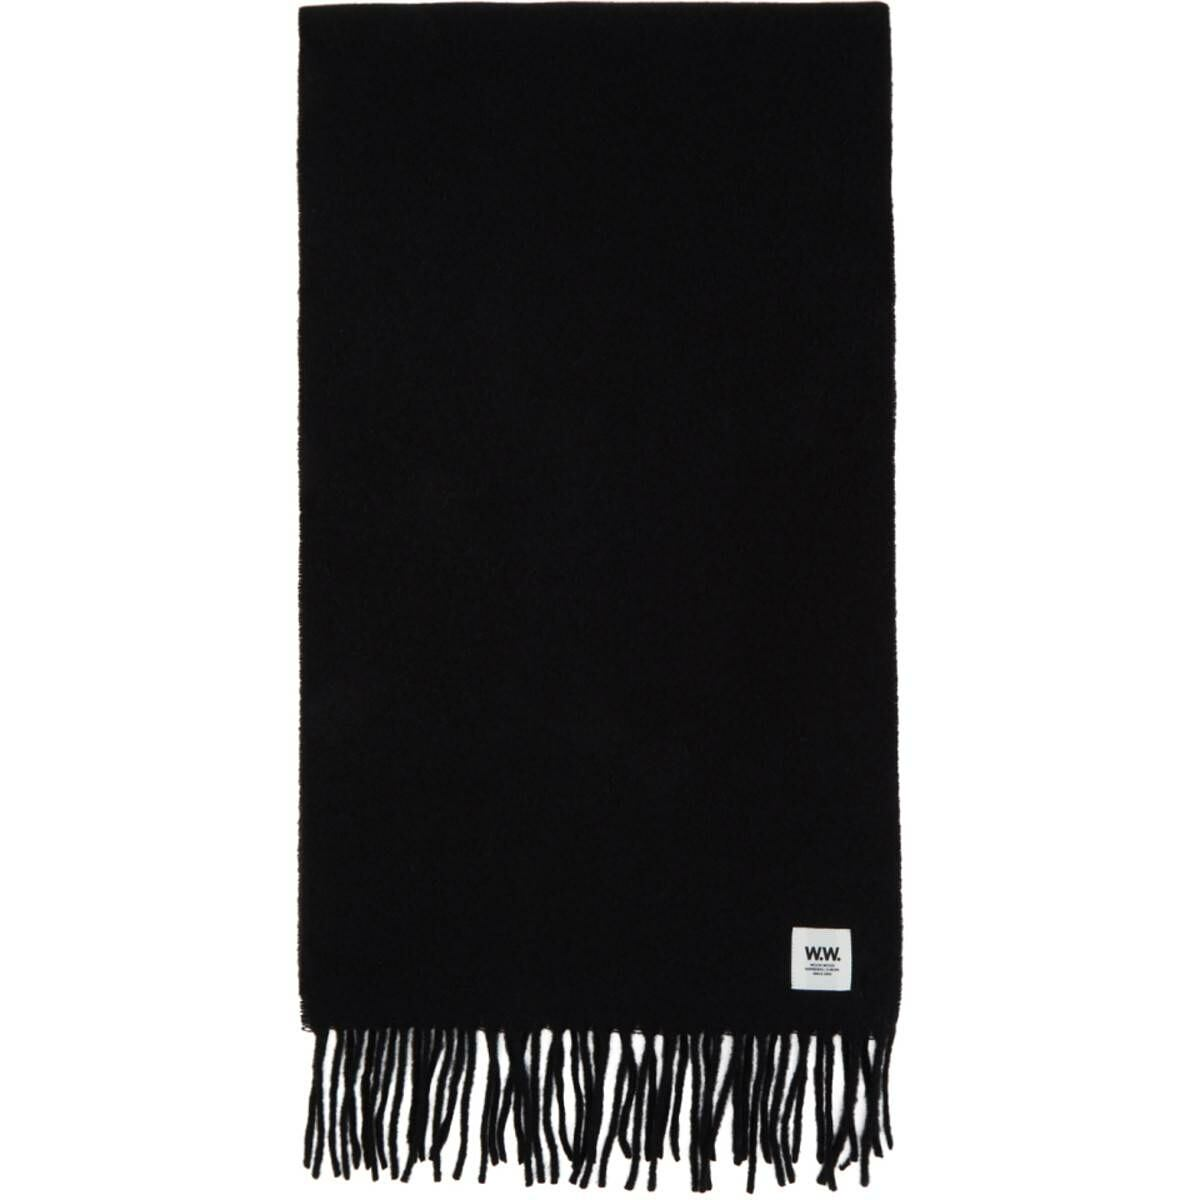 Wood Wood Black Wool Karlo Scarf Ssense USA MEN Men ACCESSORIES Mens SCARFS